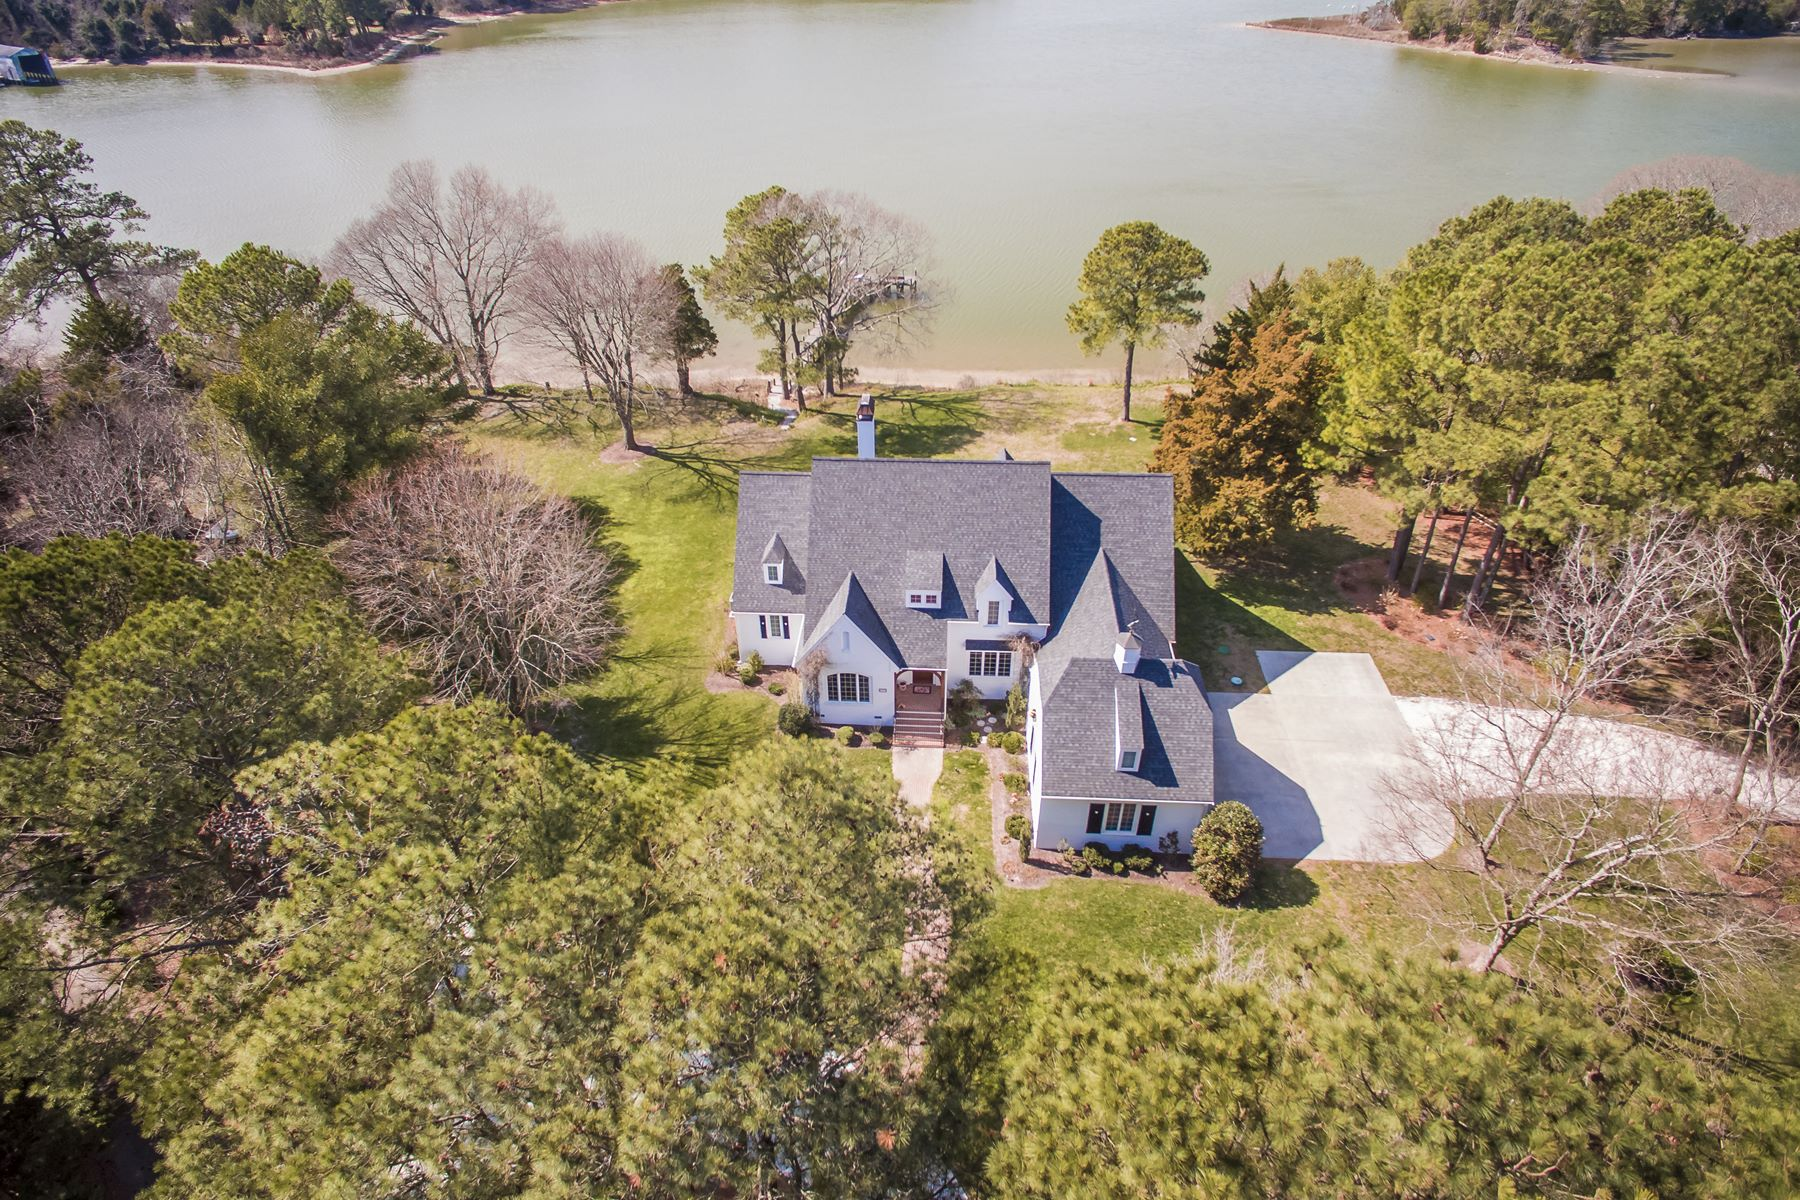 Single Family Home for Sale at Church Creek in Franktown 8448 Creek St. Franktown, Virginia 23354 United States